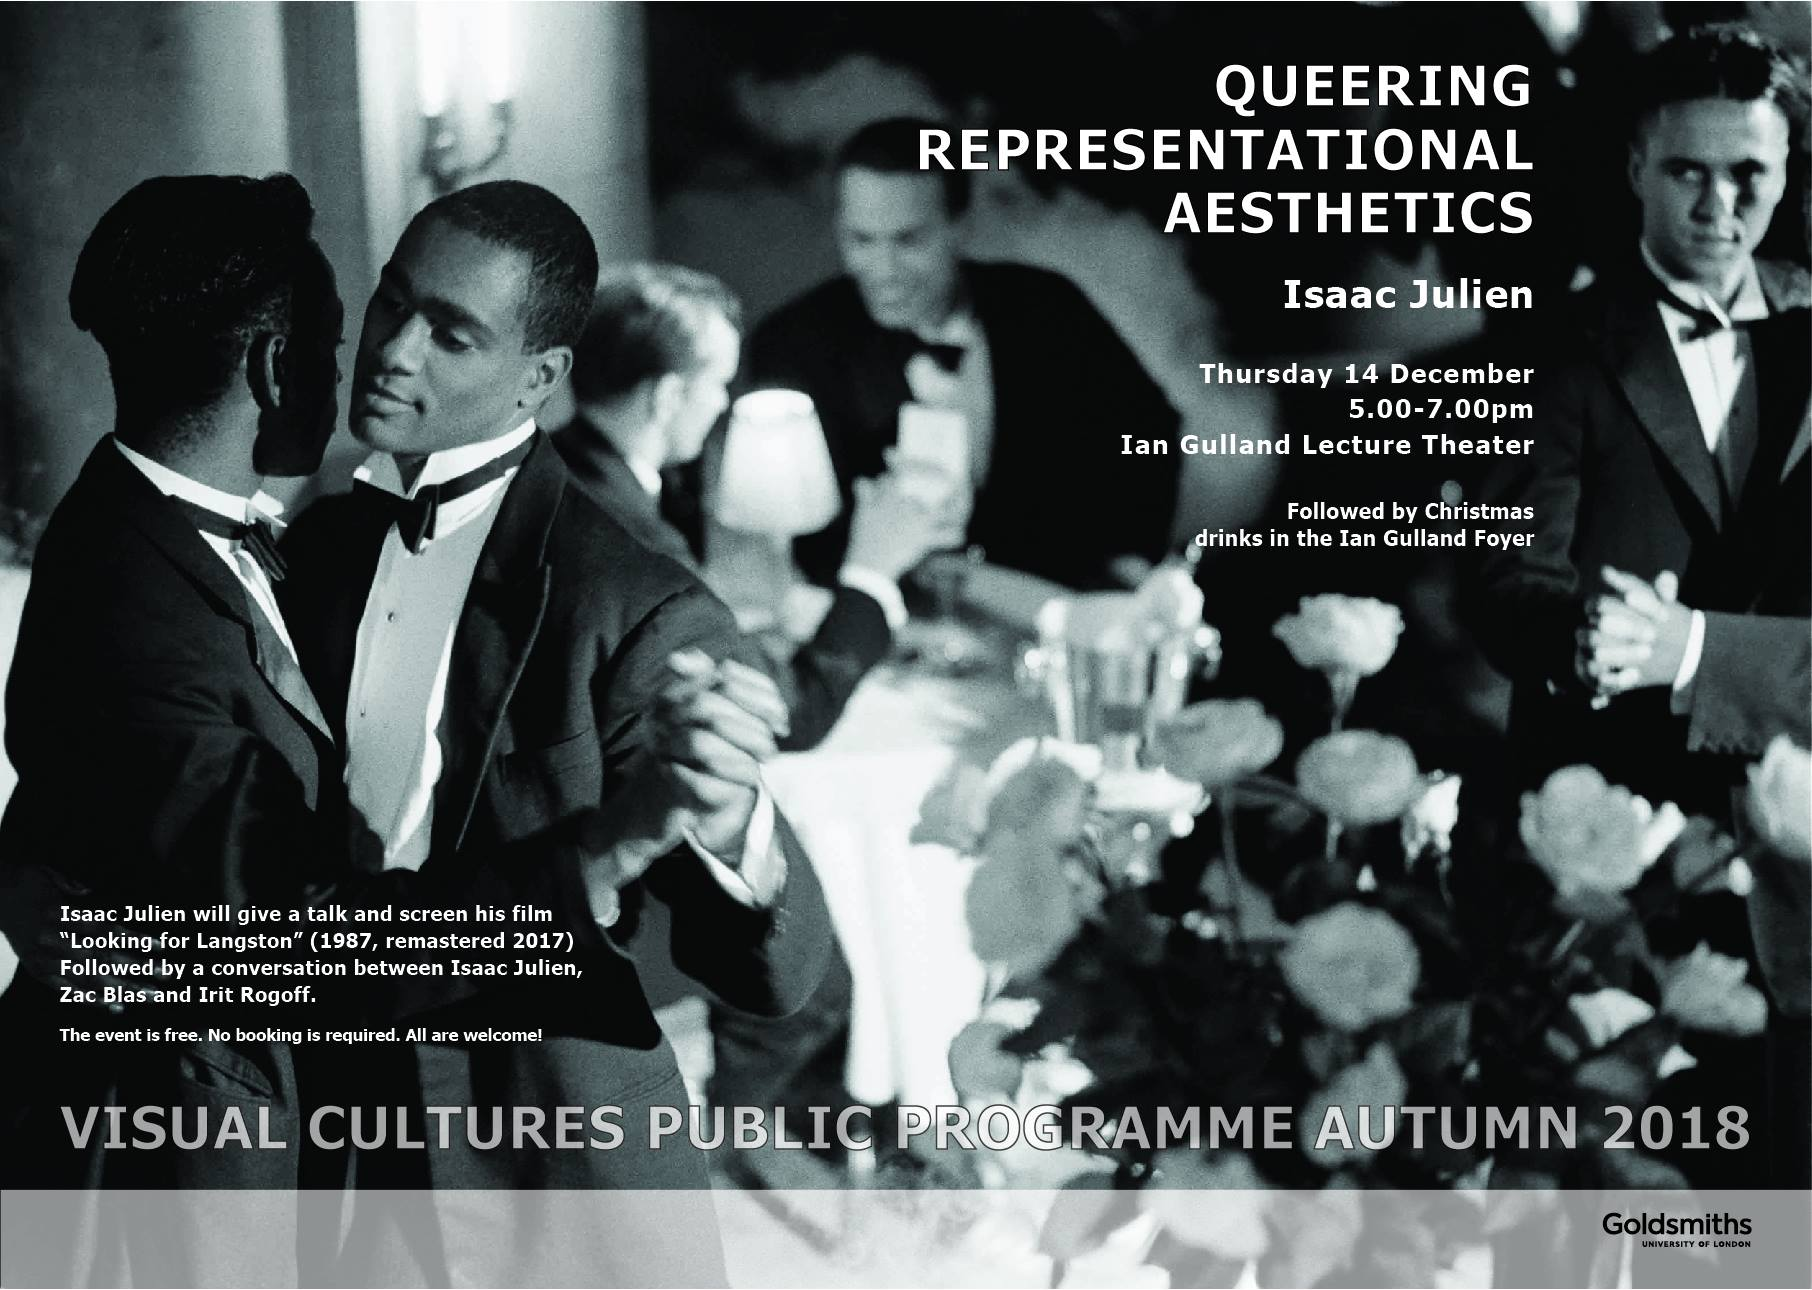 Queering Representational Aesthetics